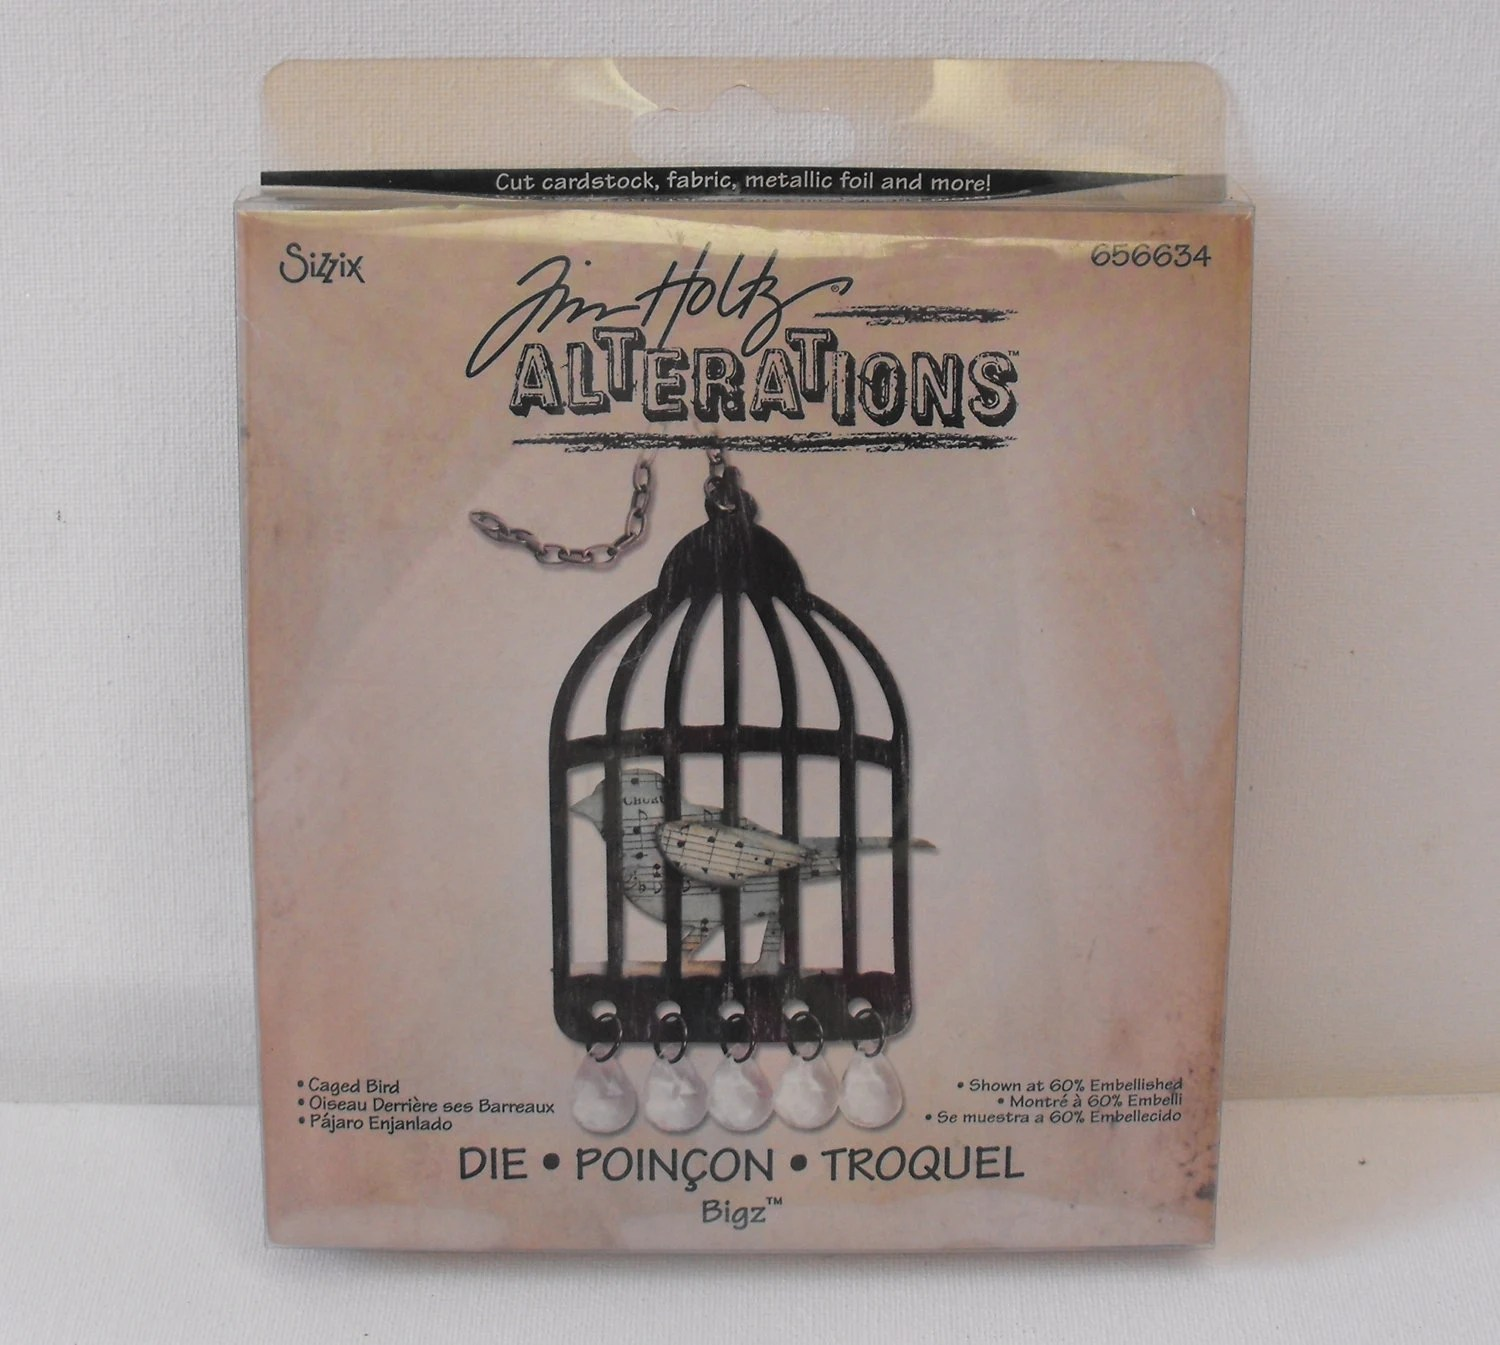 Bird Cage Die Tim Holtz Design Sizzix Alterations Distressed Scrapbooking Stamping Paper Craft Mixed Media